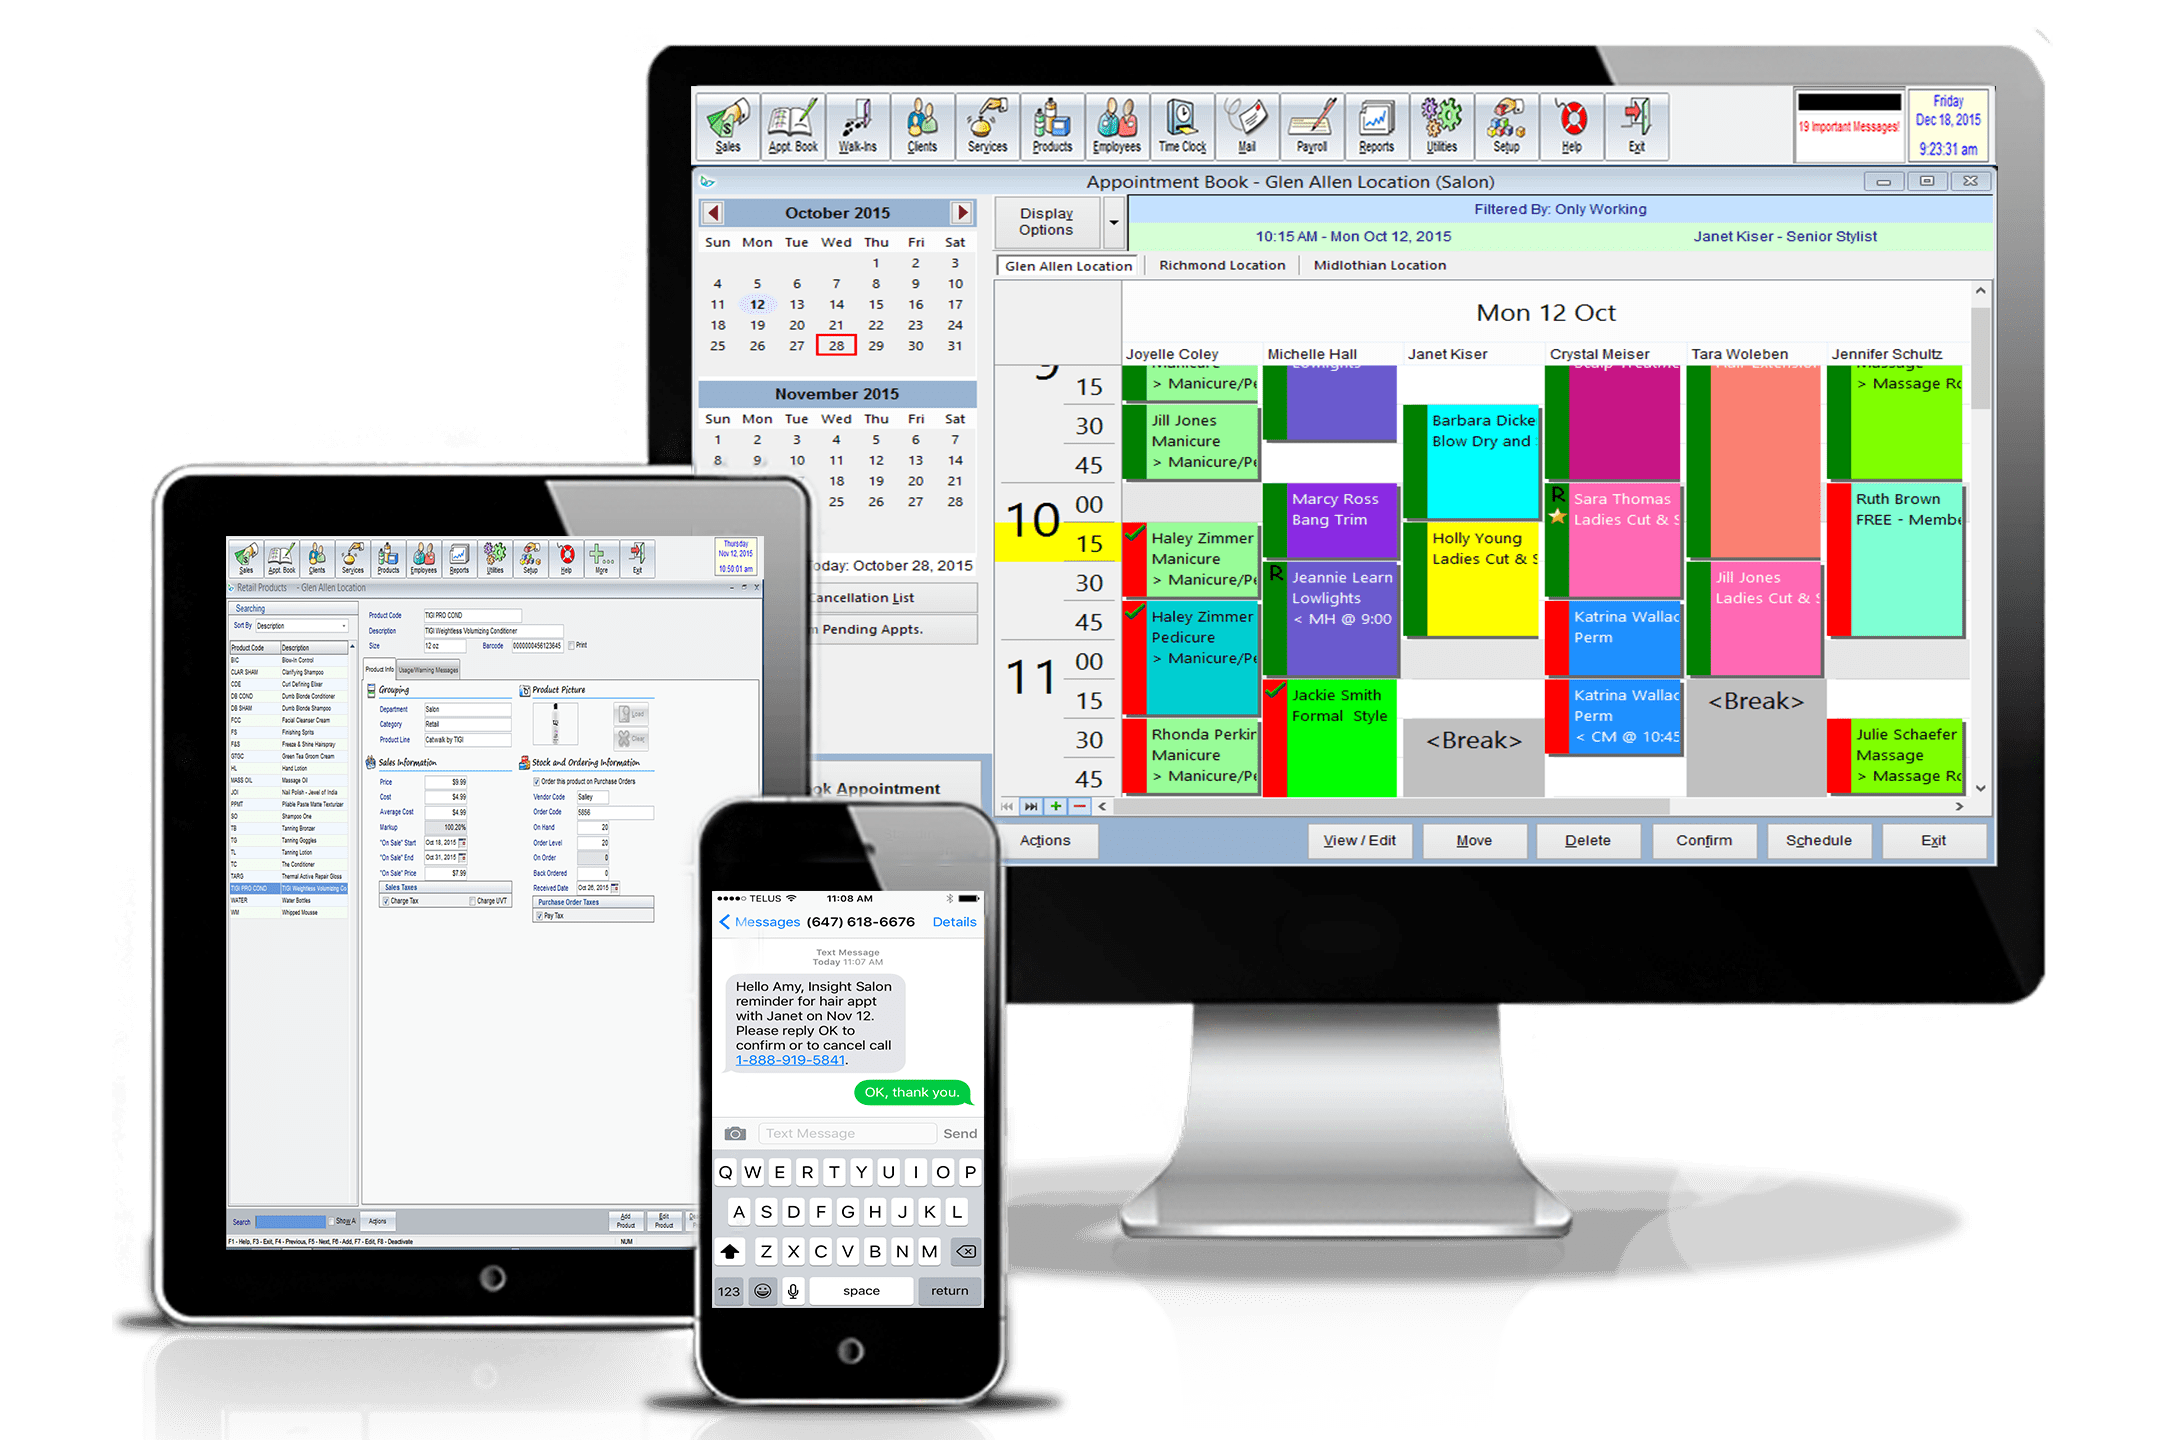 online booking appointment book salon management software